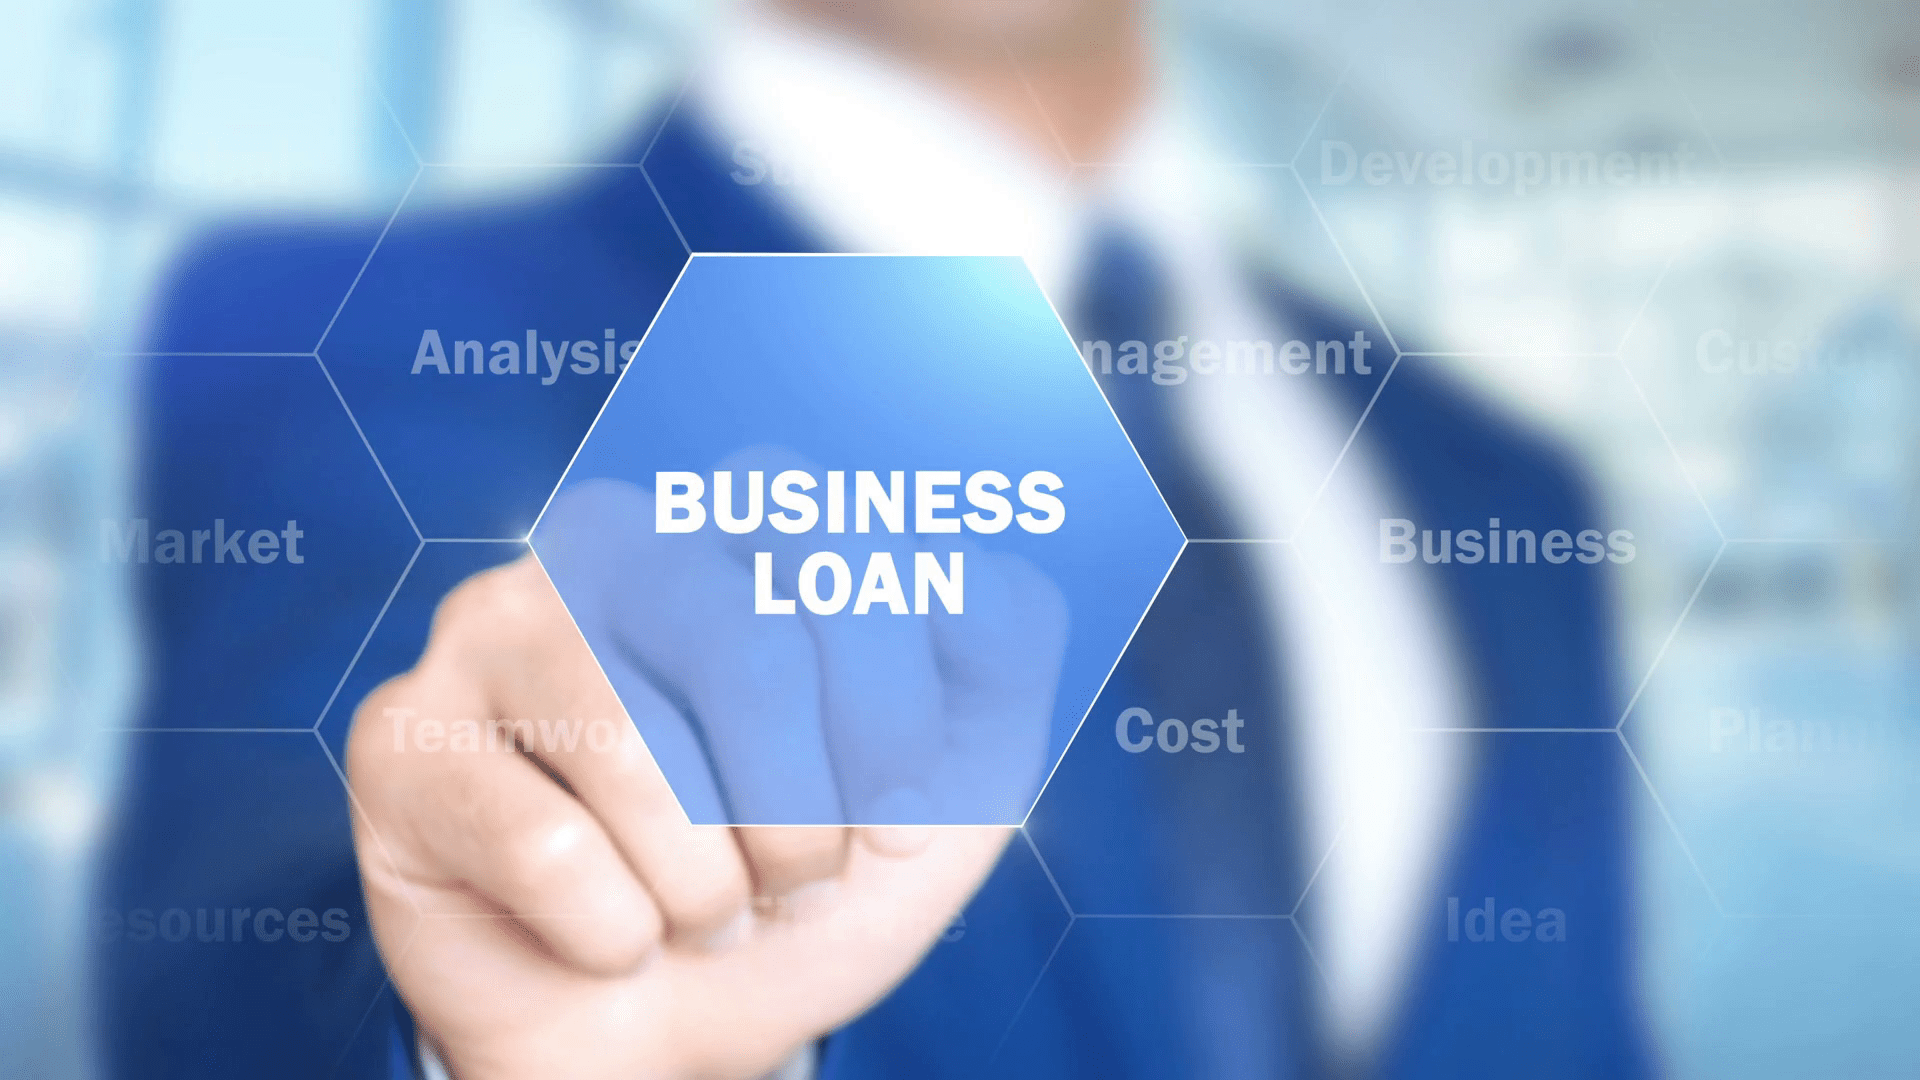 Top 5 Important Business Loan Requirements - Finance Buddha Blog ...